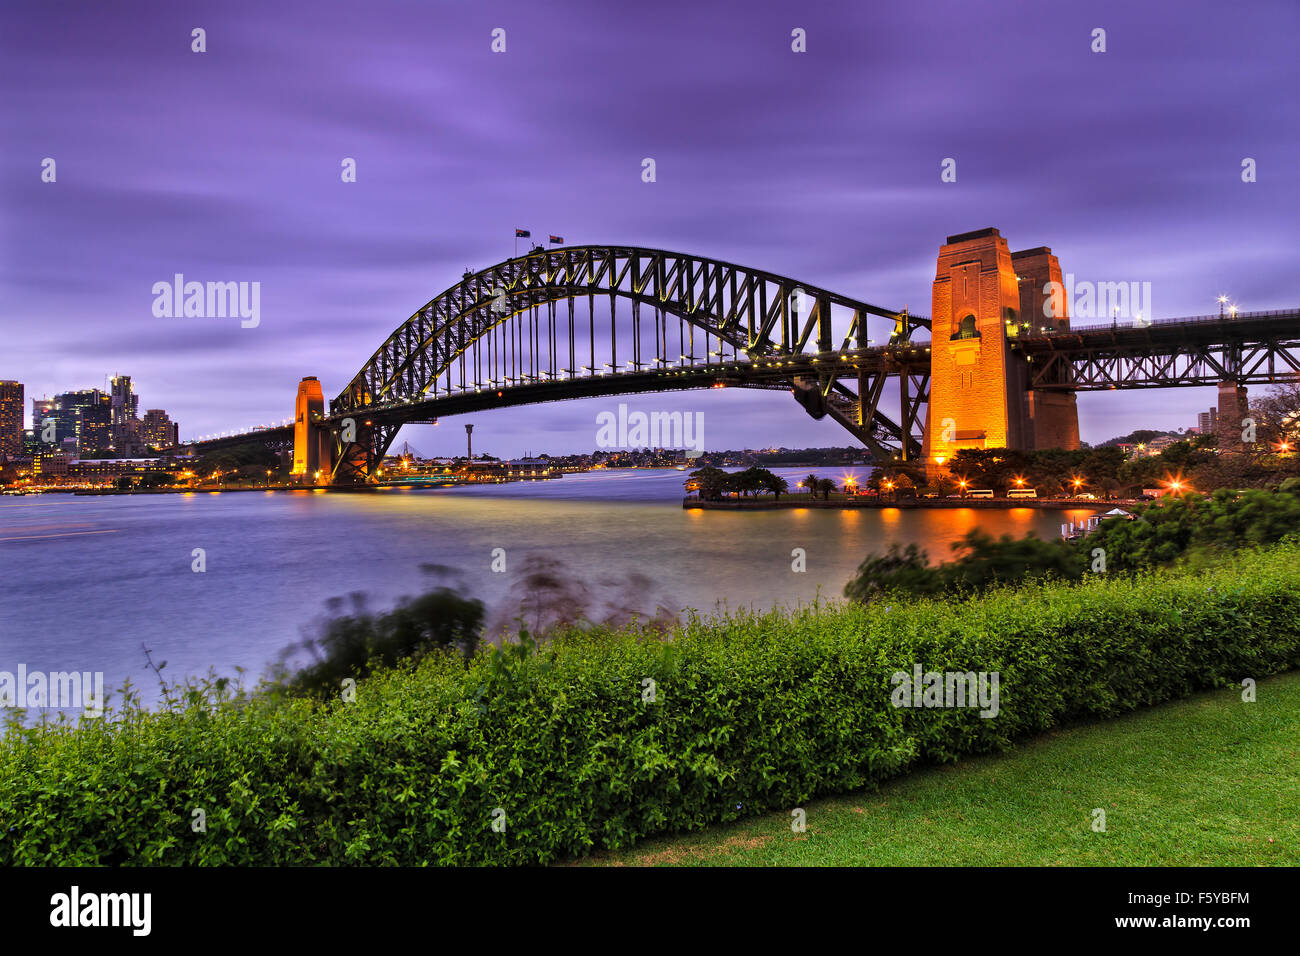 side view of famous Sydney Harbour bridge at sunset with illumination from green recreational park at milsons point - Stock Image